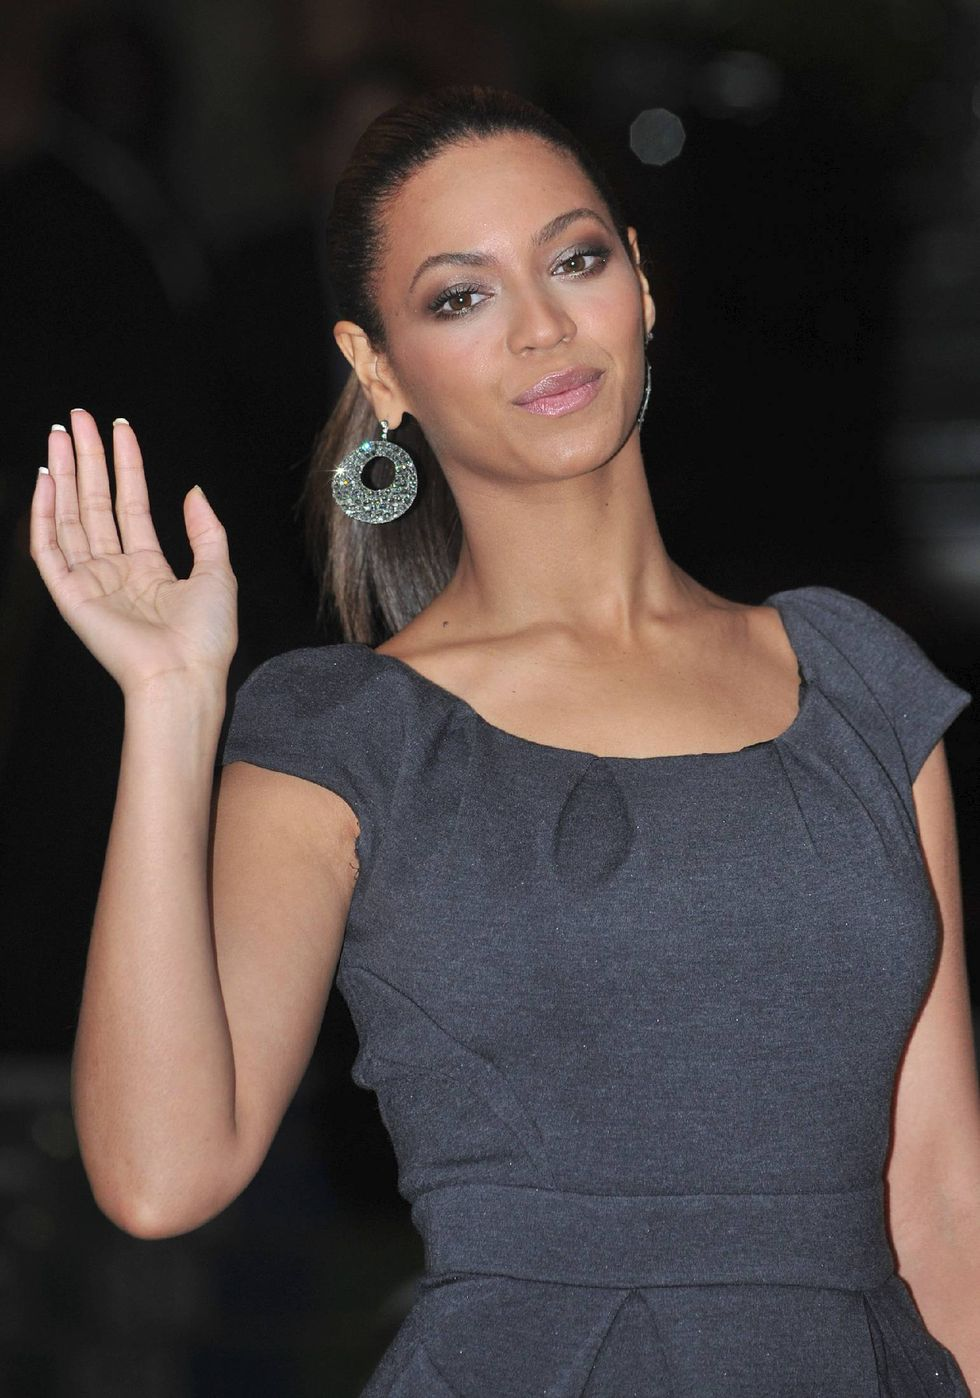 beyonce-knowles-at-the-mandarin-oriental-hotel-in-london-01